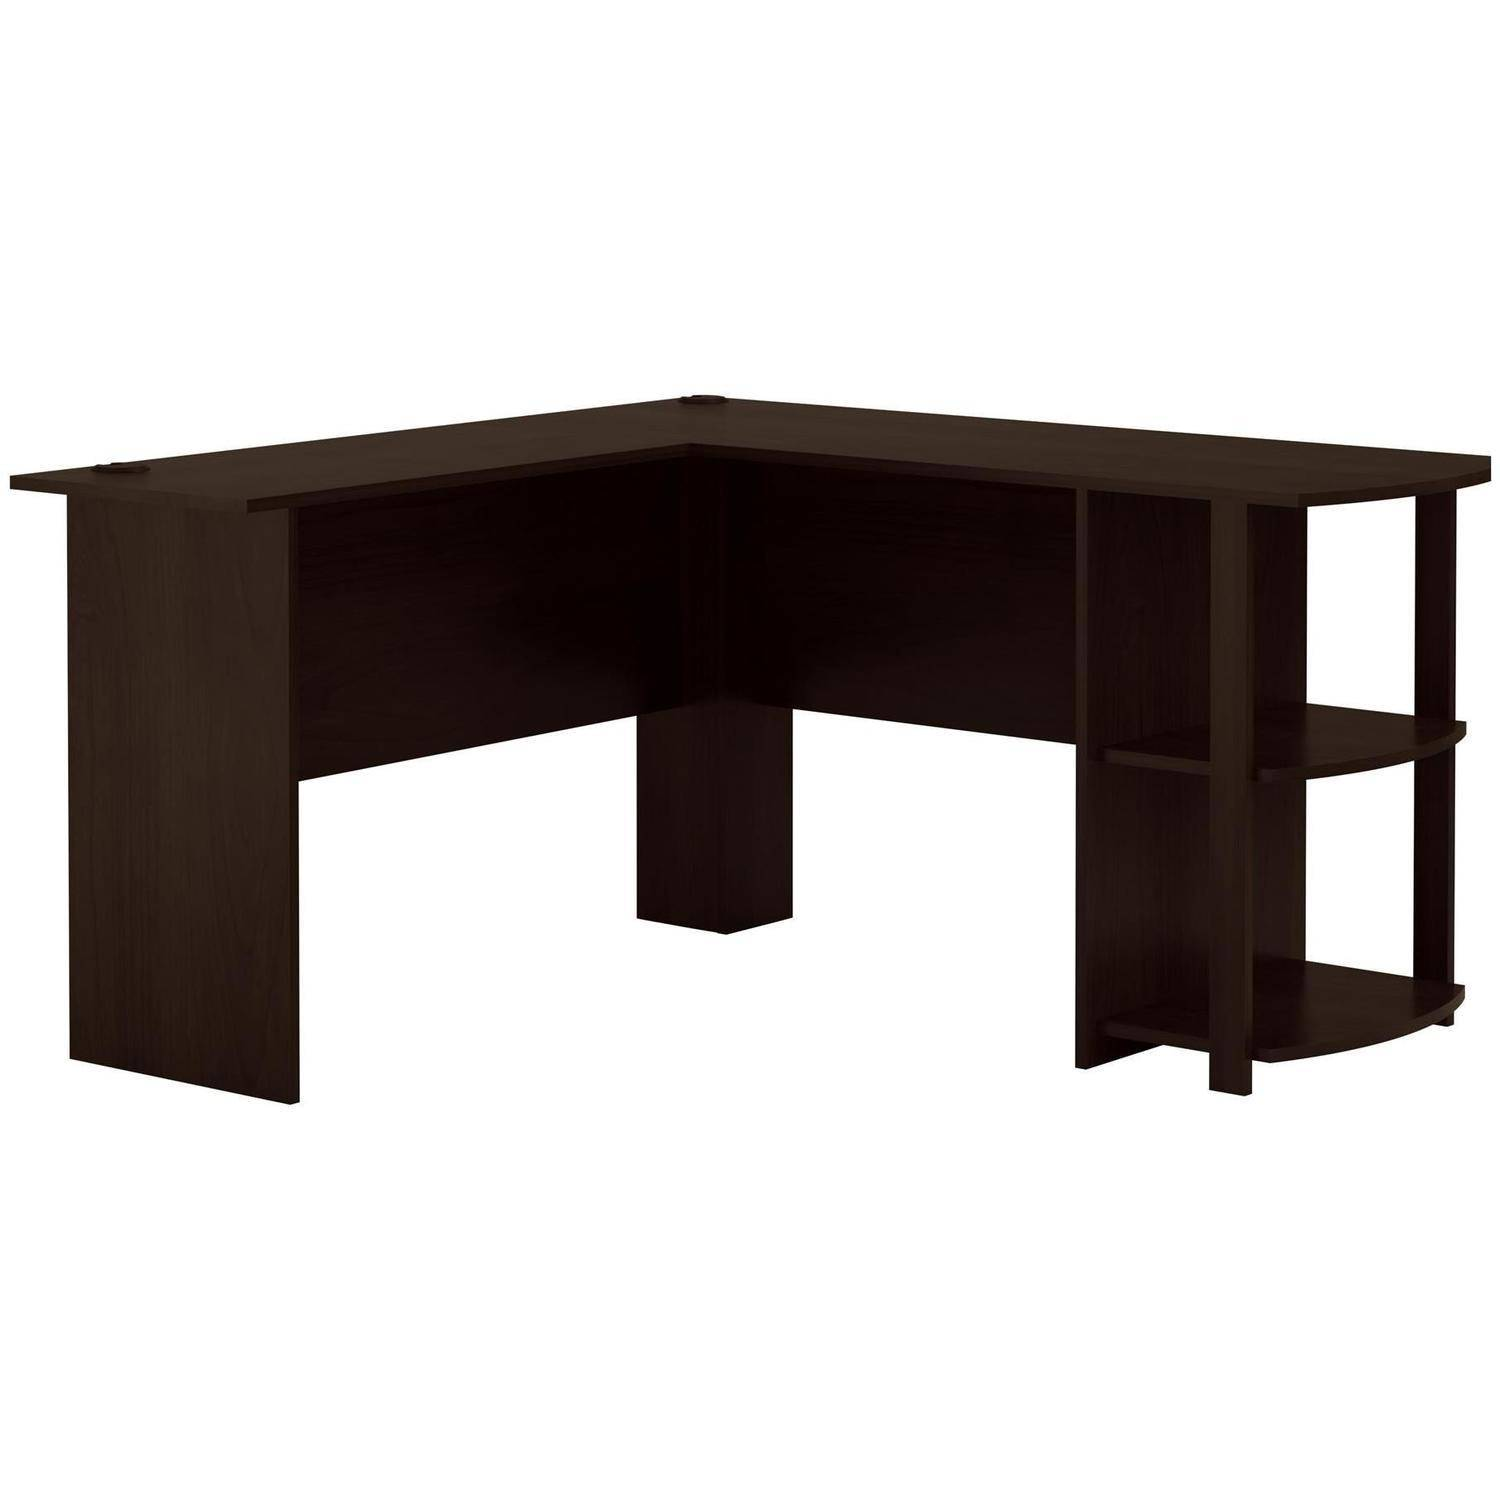 l shaped desk with side storage multiple finishes walmartcom - Home Office L Shaped Desk